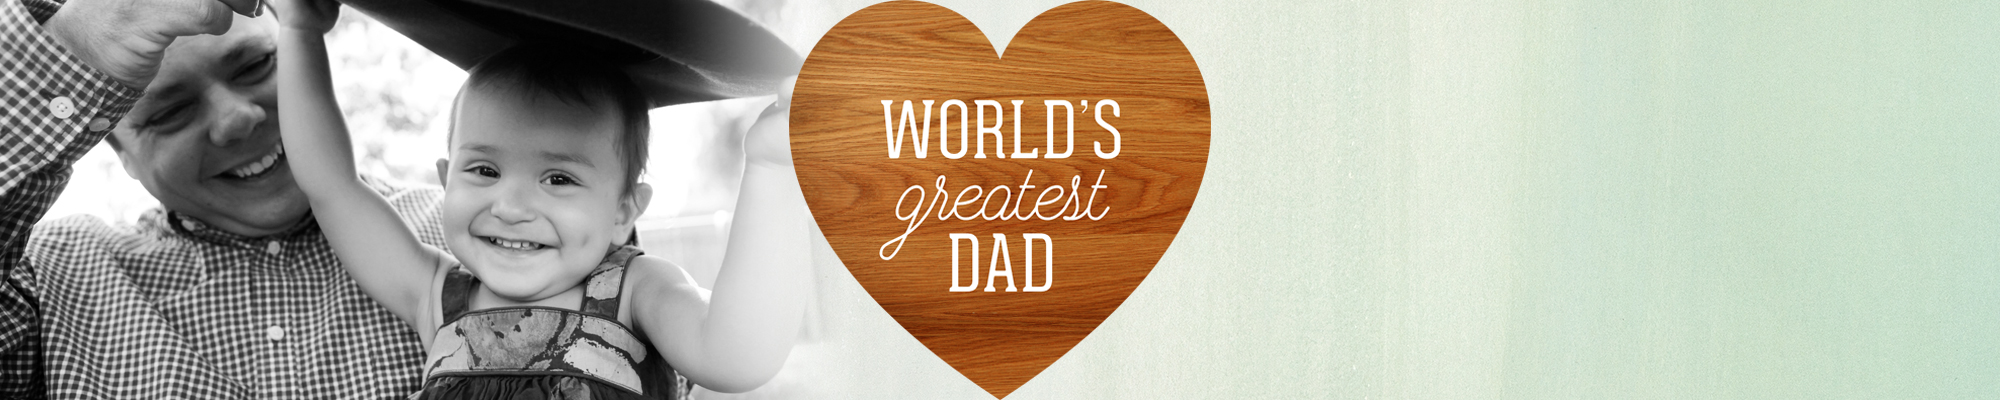 100% pure Dad : This June 18, celebrate Dad with gifts that are original as he is.